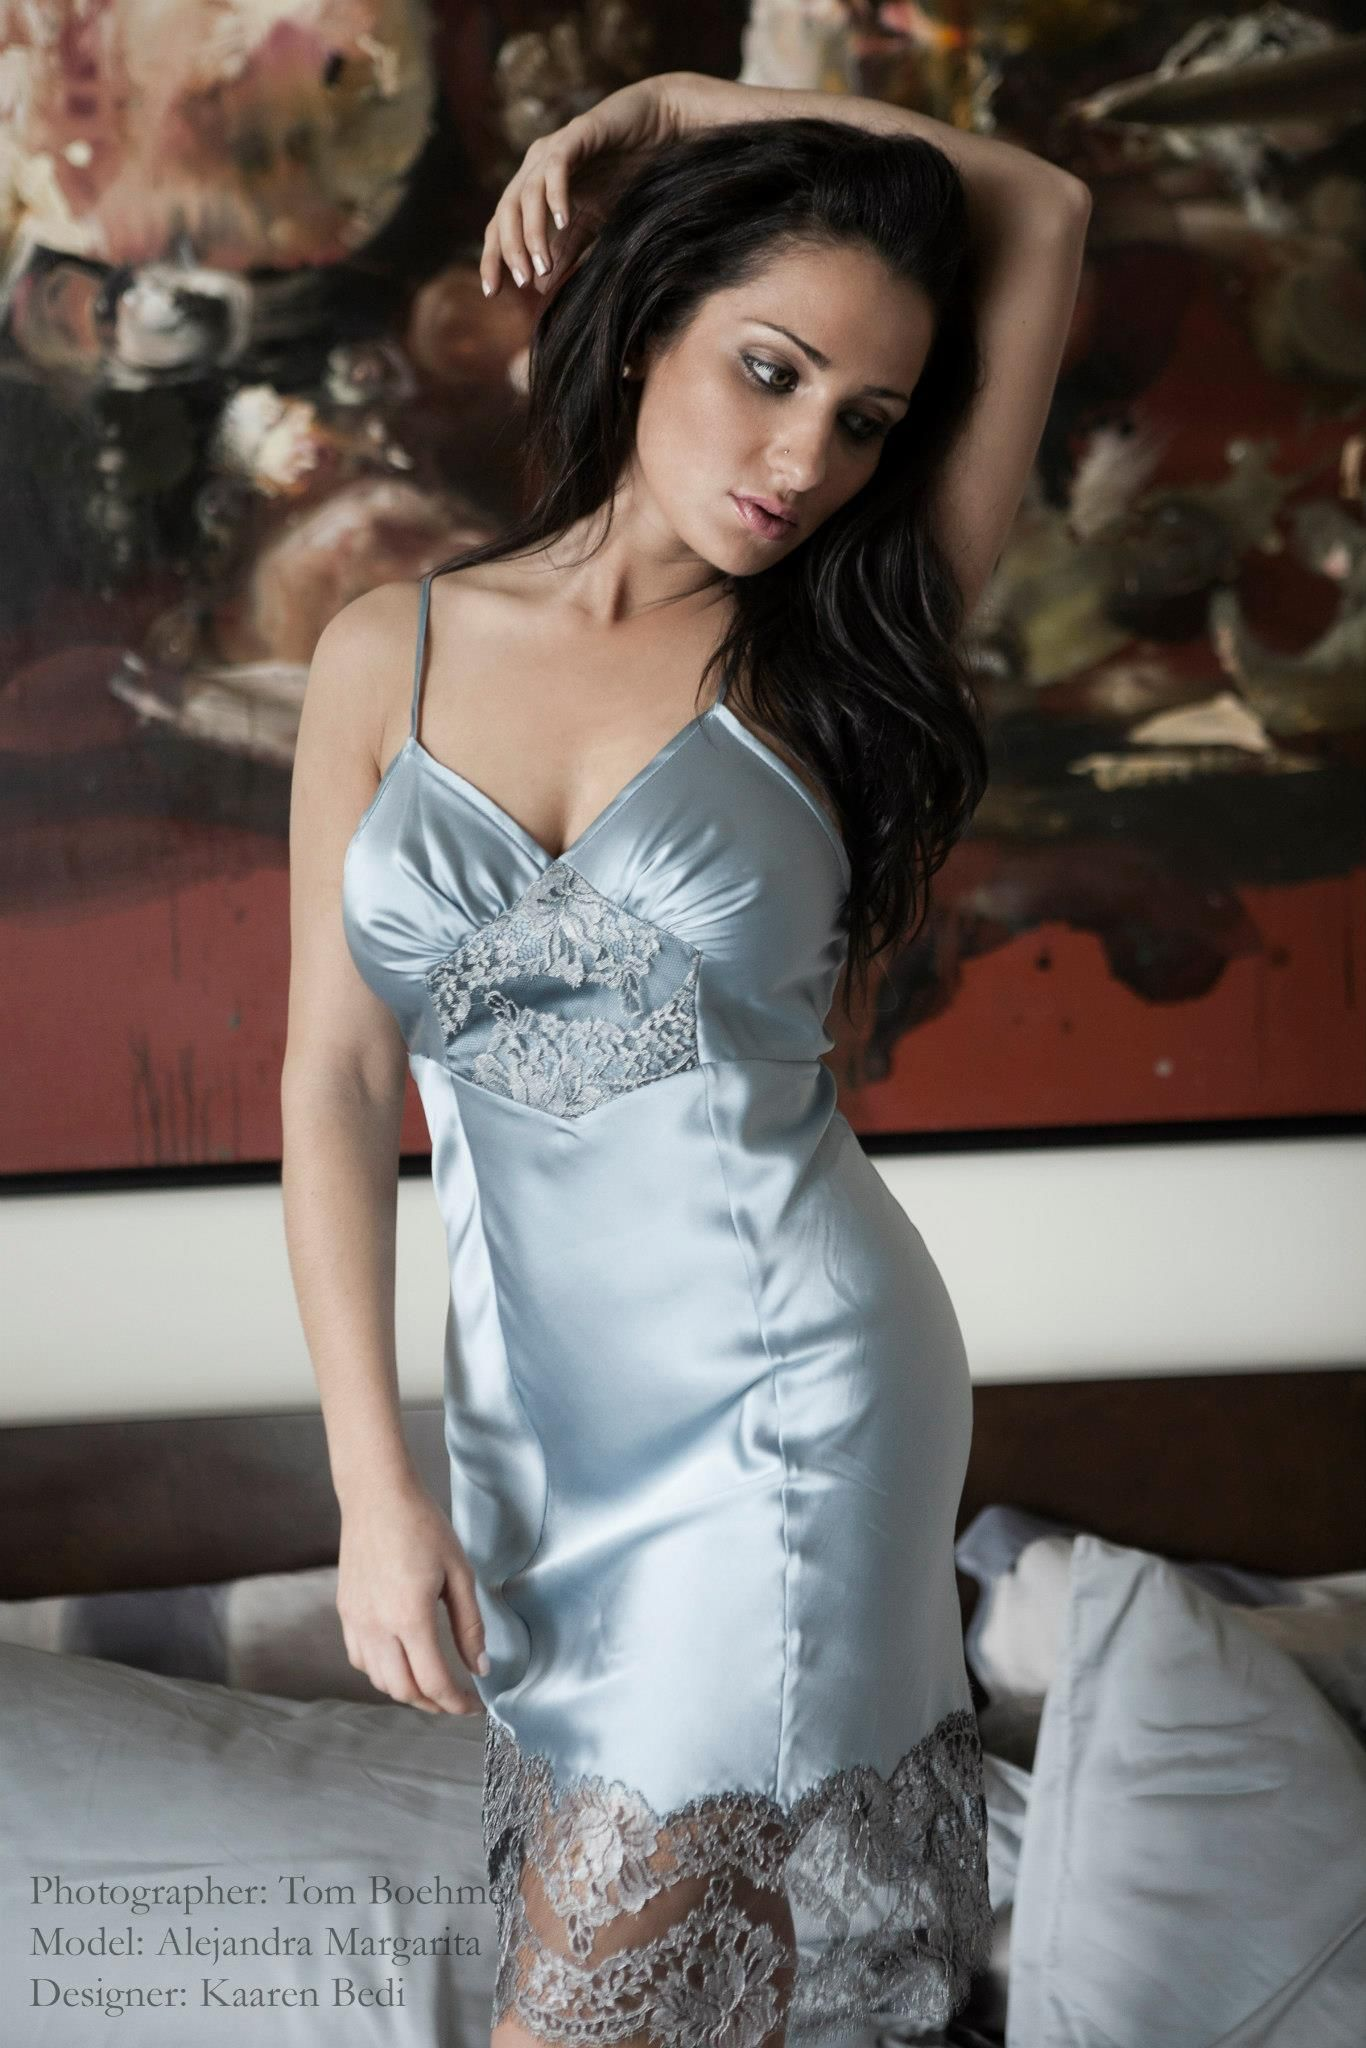 http://www.layneau/wp-content/uploads/2013/06/maggie-in-blue